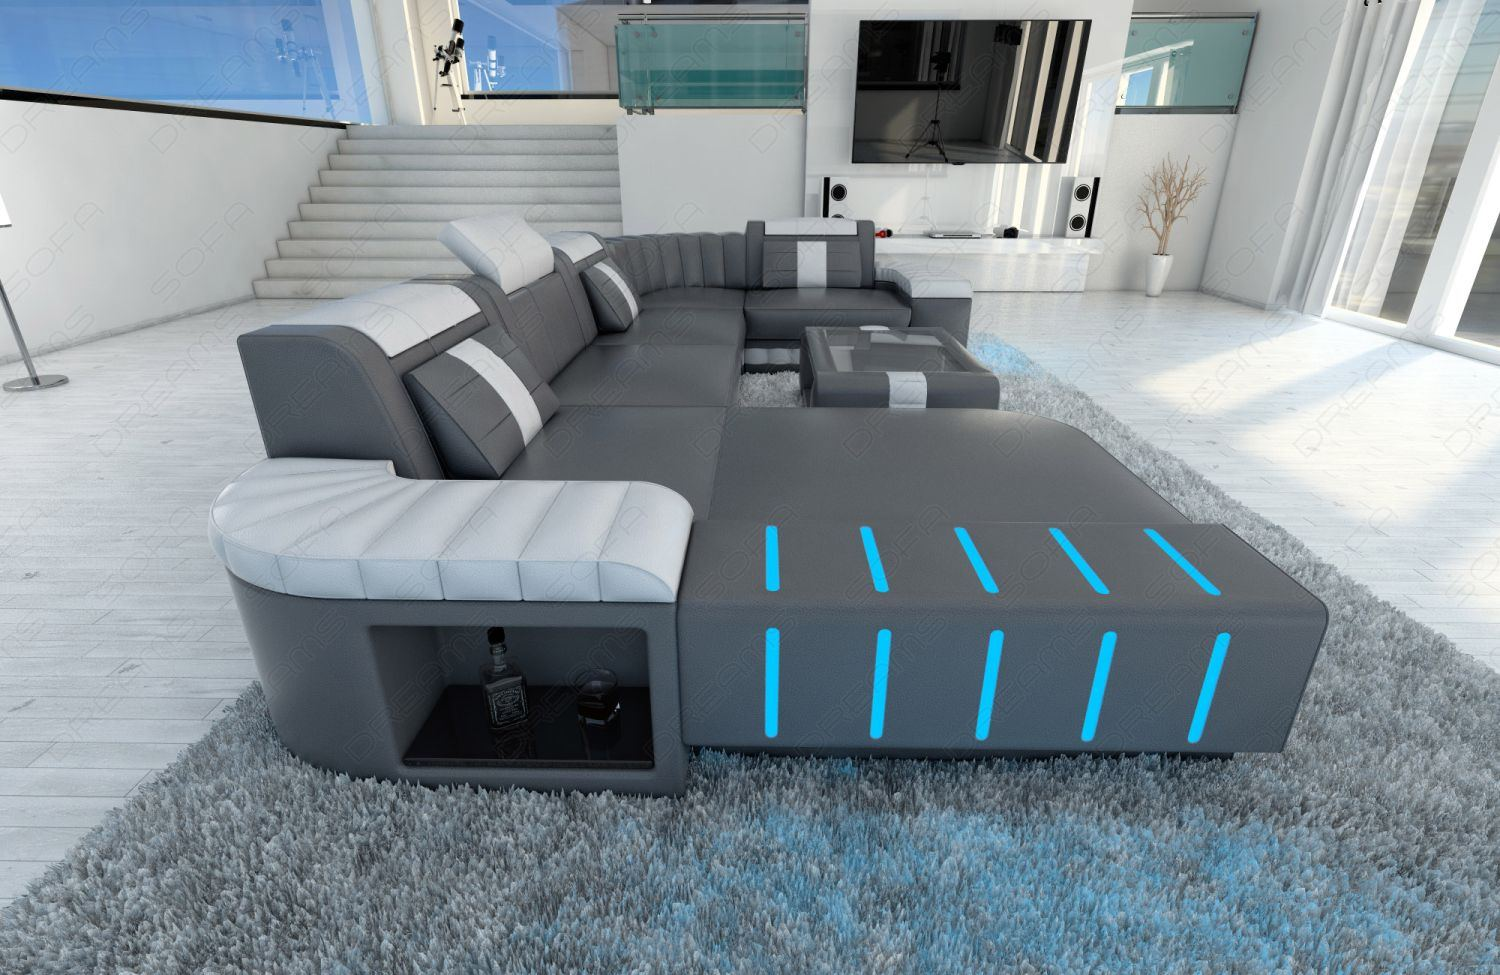 polstersofa wohnlandschaft bellagio u form design sofa mit led beleuchtung ebay. Black Bedroom Furniture Sets. Home Design Ideas